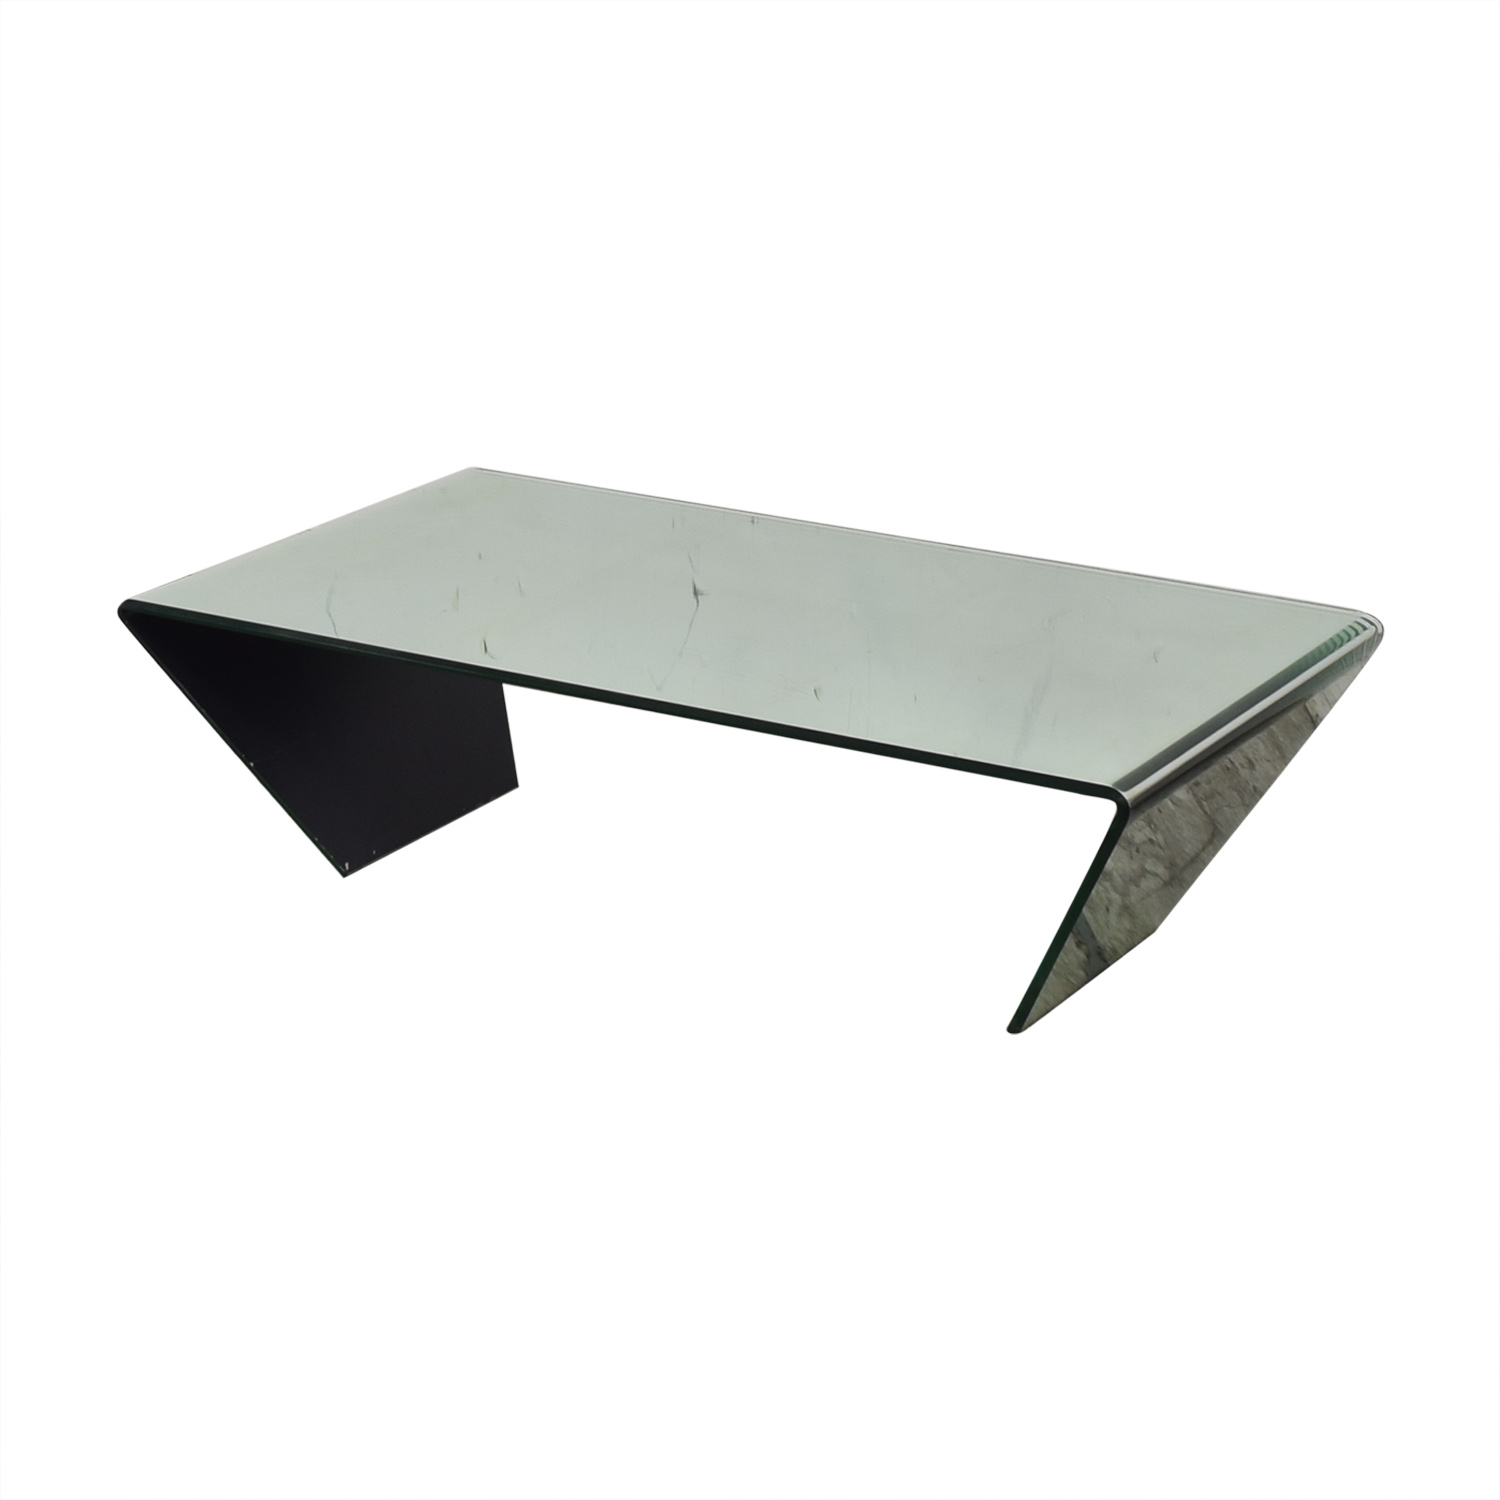 Bent Mirrored Coffee Table